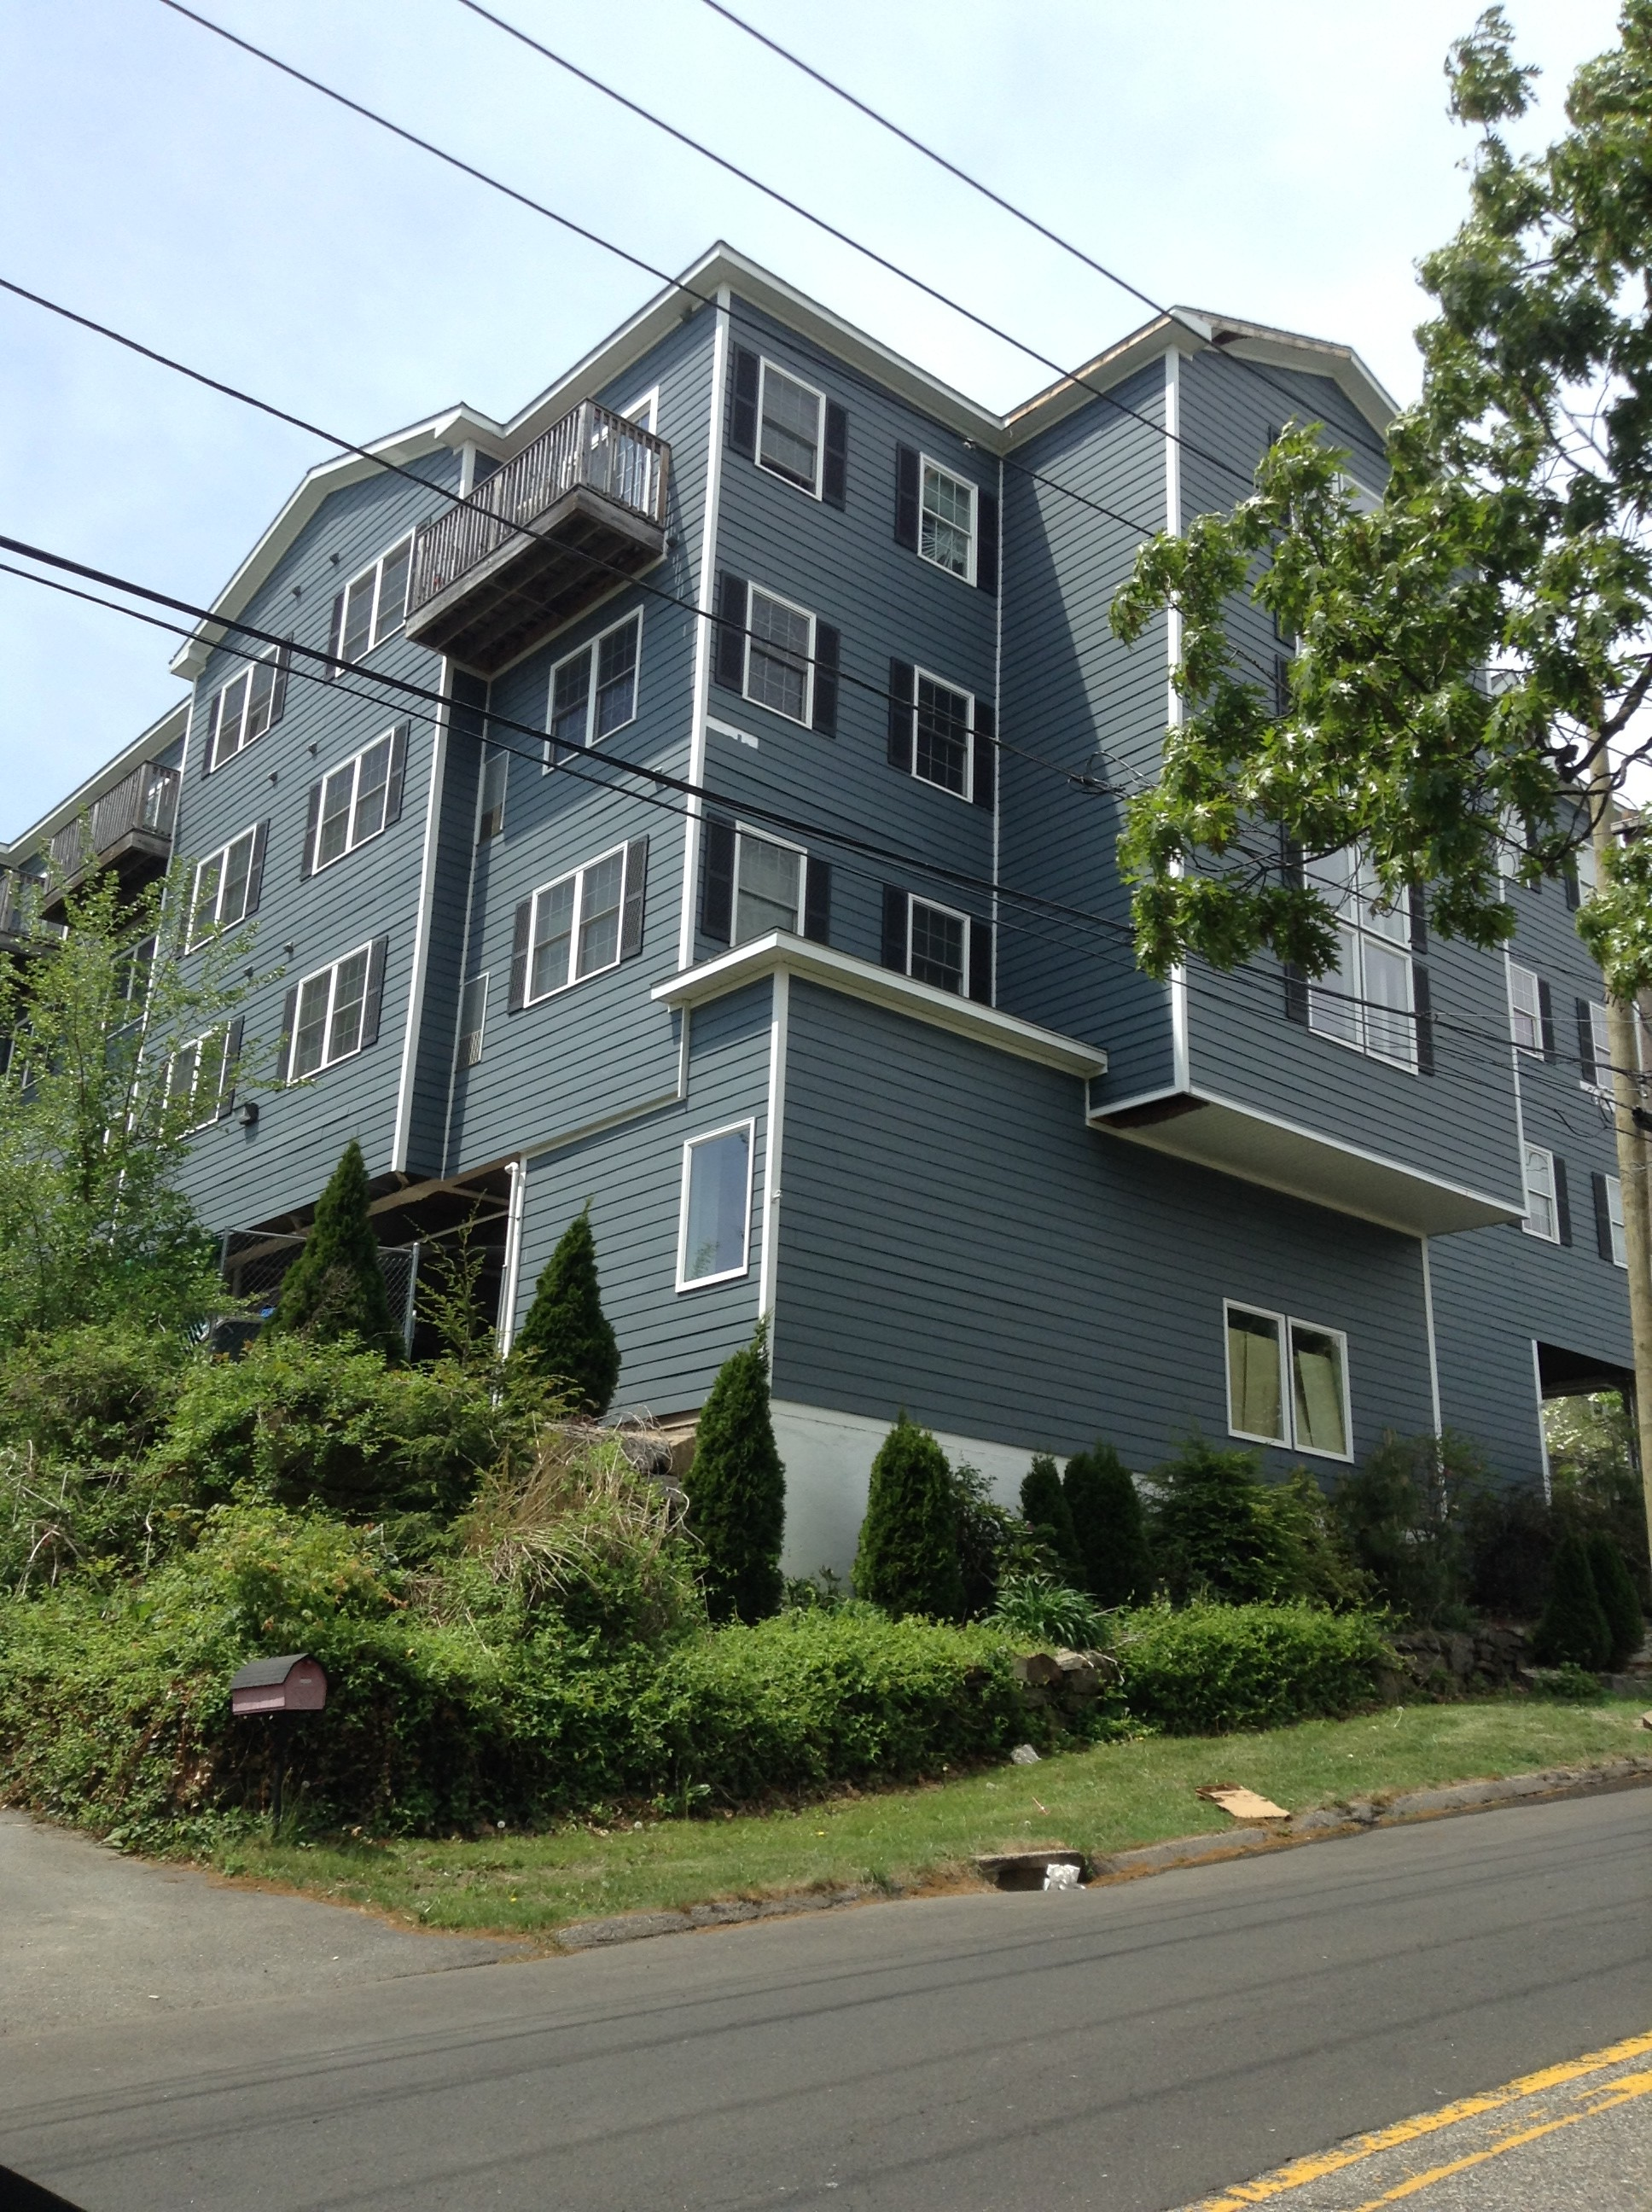 677 Sylvan Ave 212 Bridgeport Ct 06606 2 Bedroom Apartment For Rent For 1 325 Month Zumper